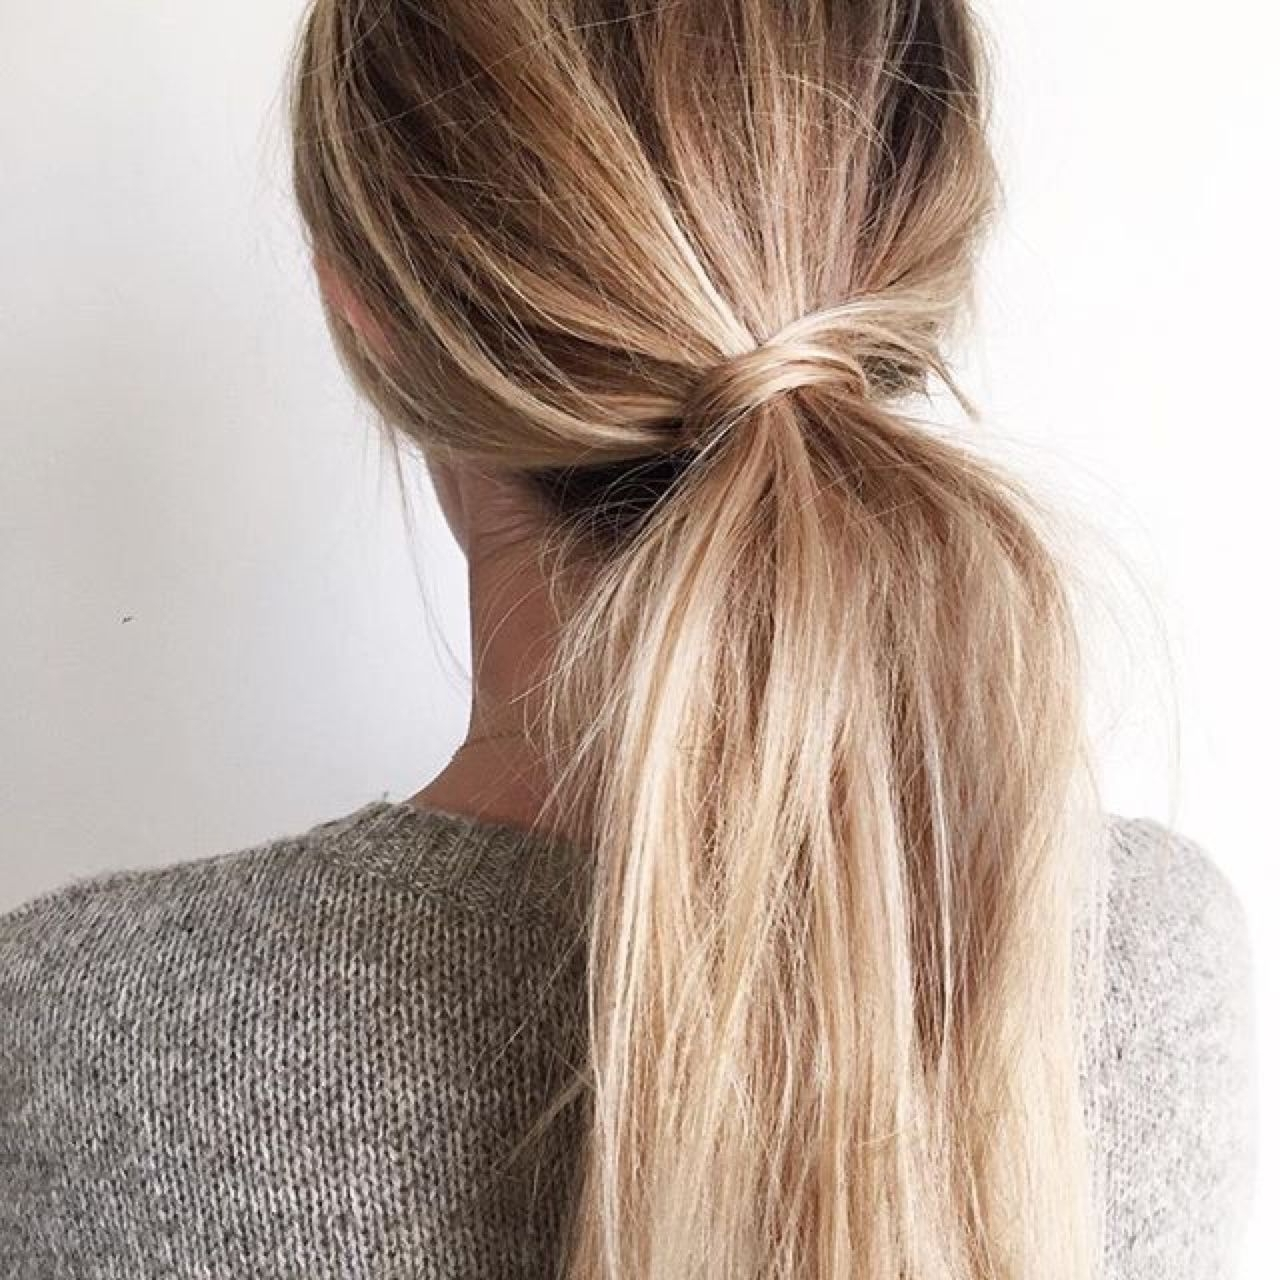 Ponytail, Messy Low With Regard To Latest Full And Fluffy Blonde Ponytail Hairstyles (View 7 of 20)